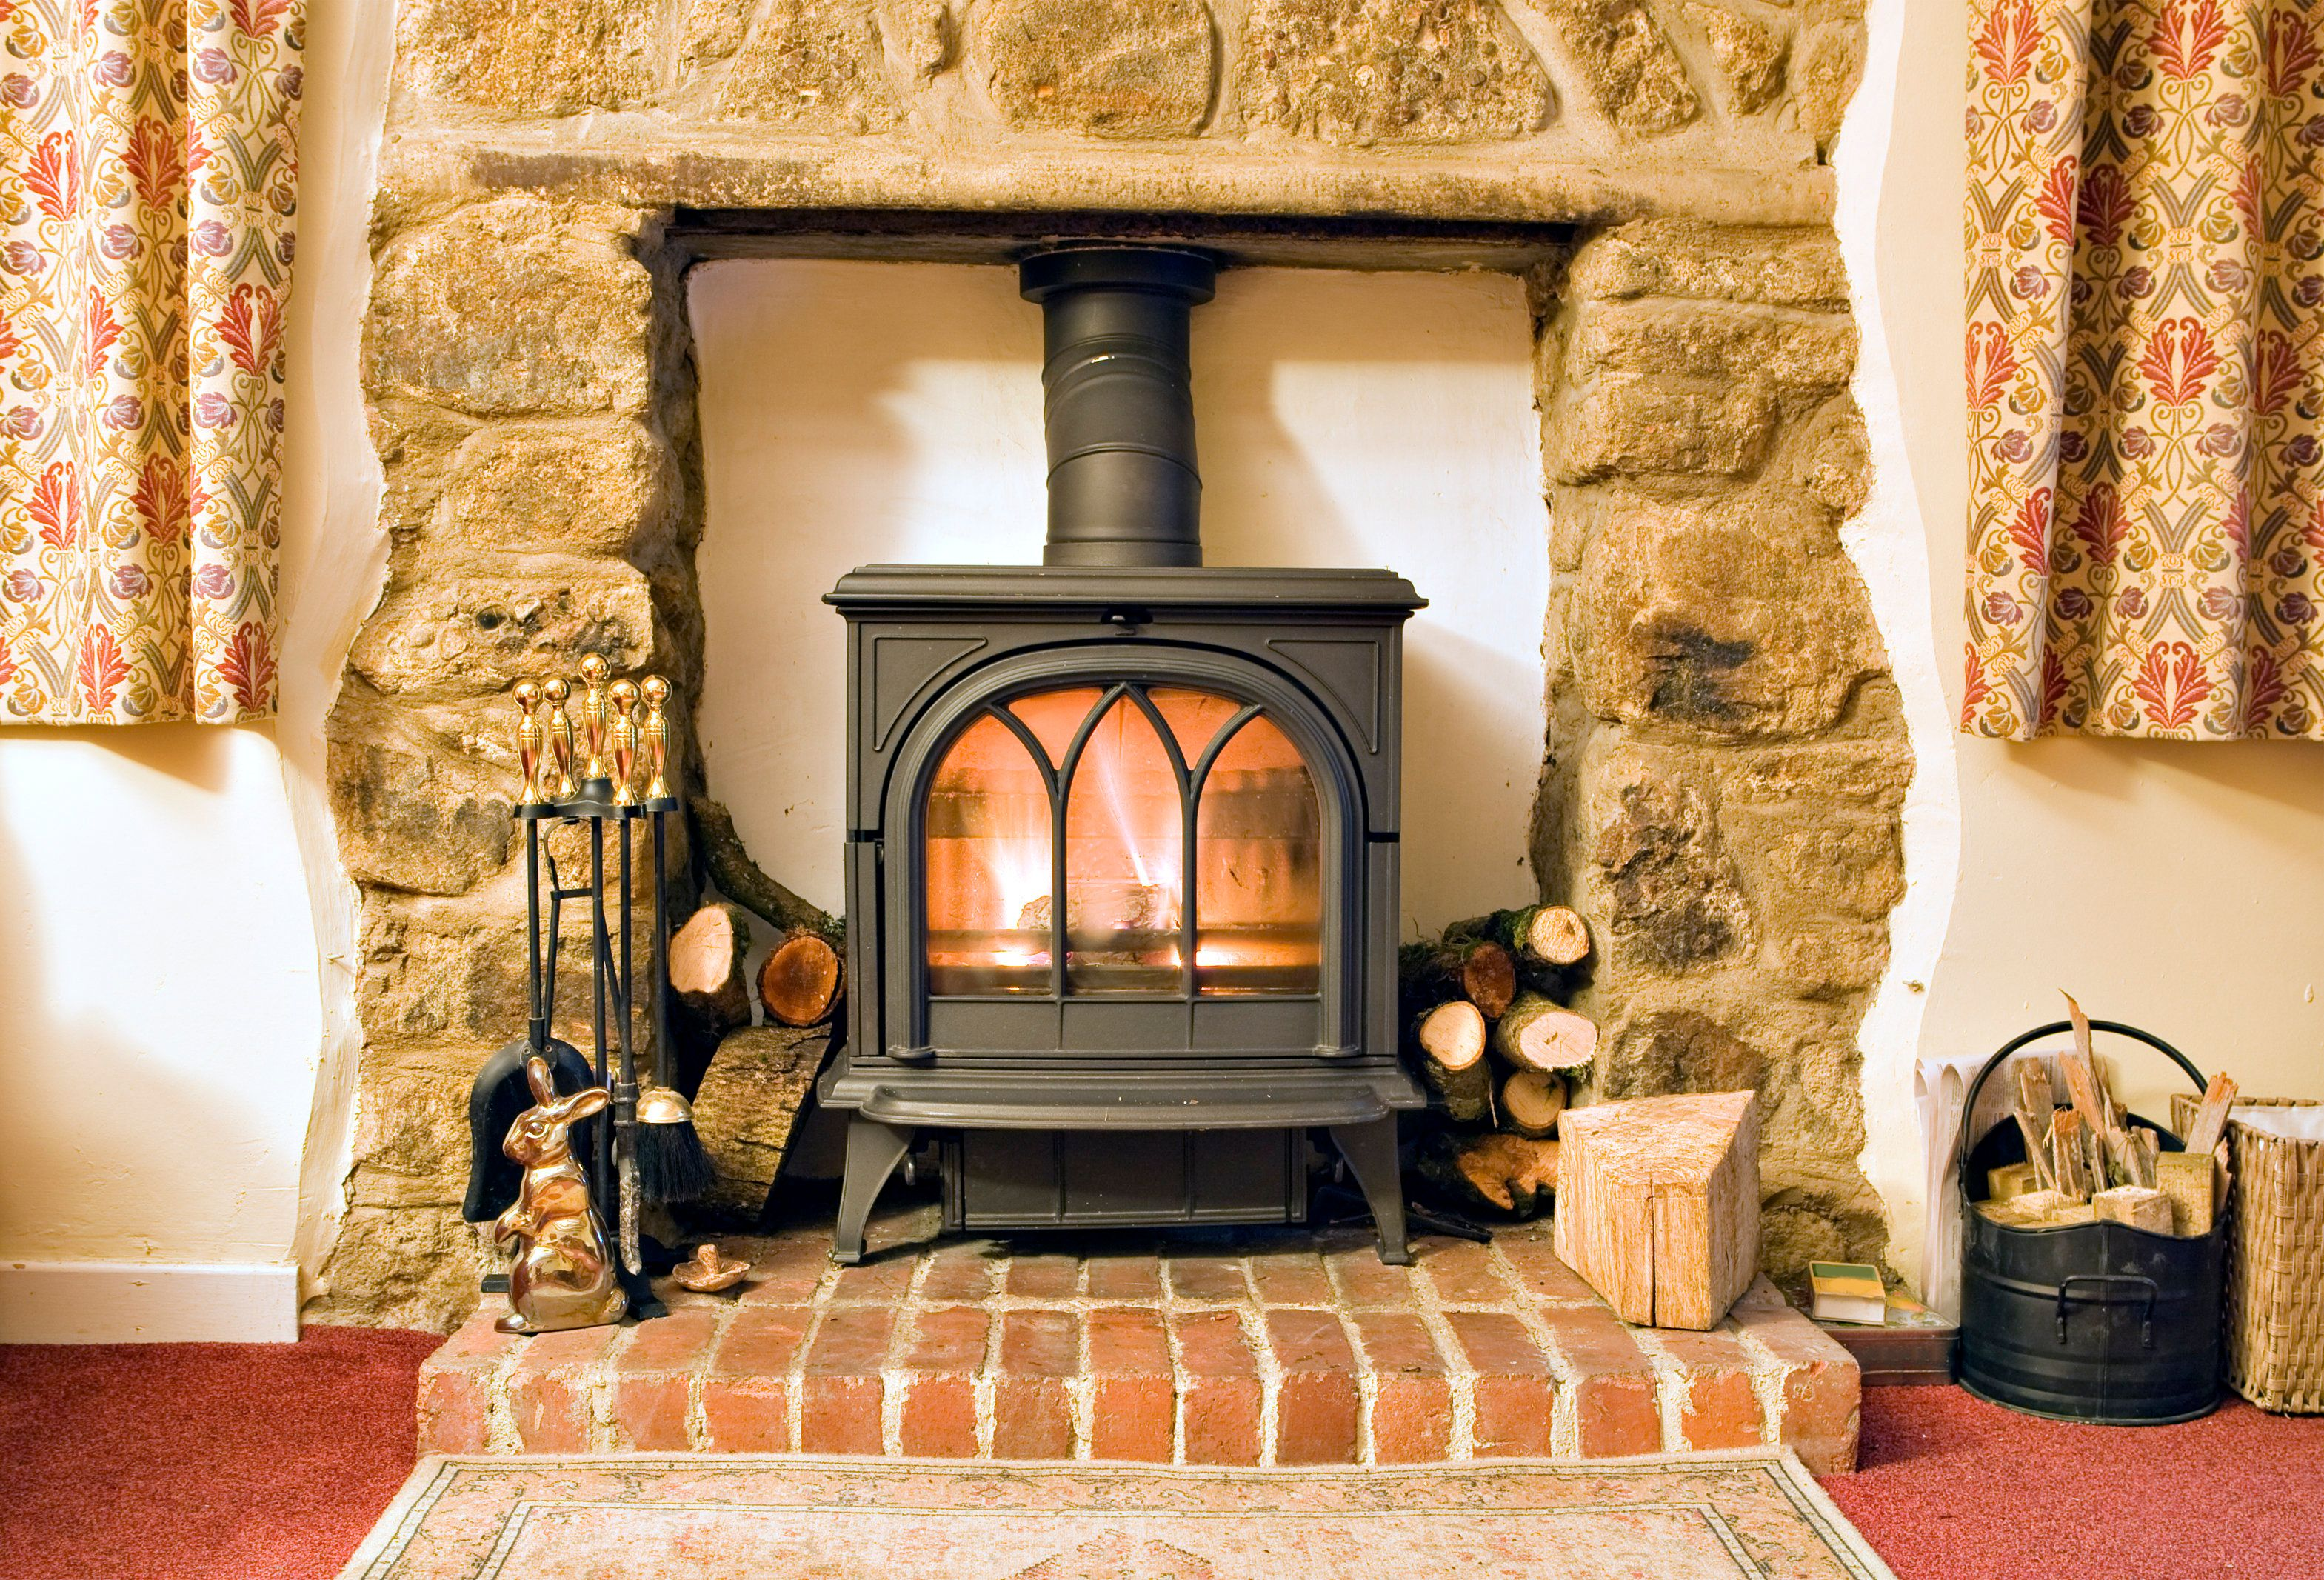 Why Wood Burning Stoves Are Bad For You And The